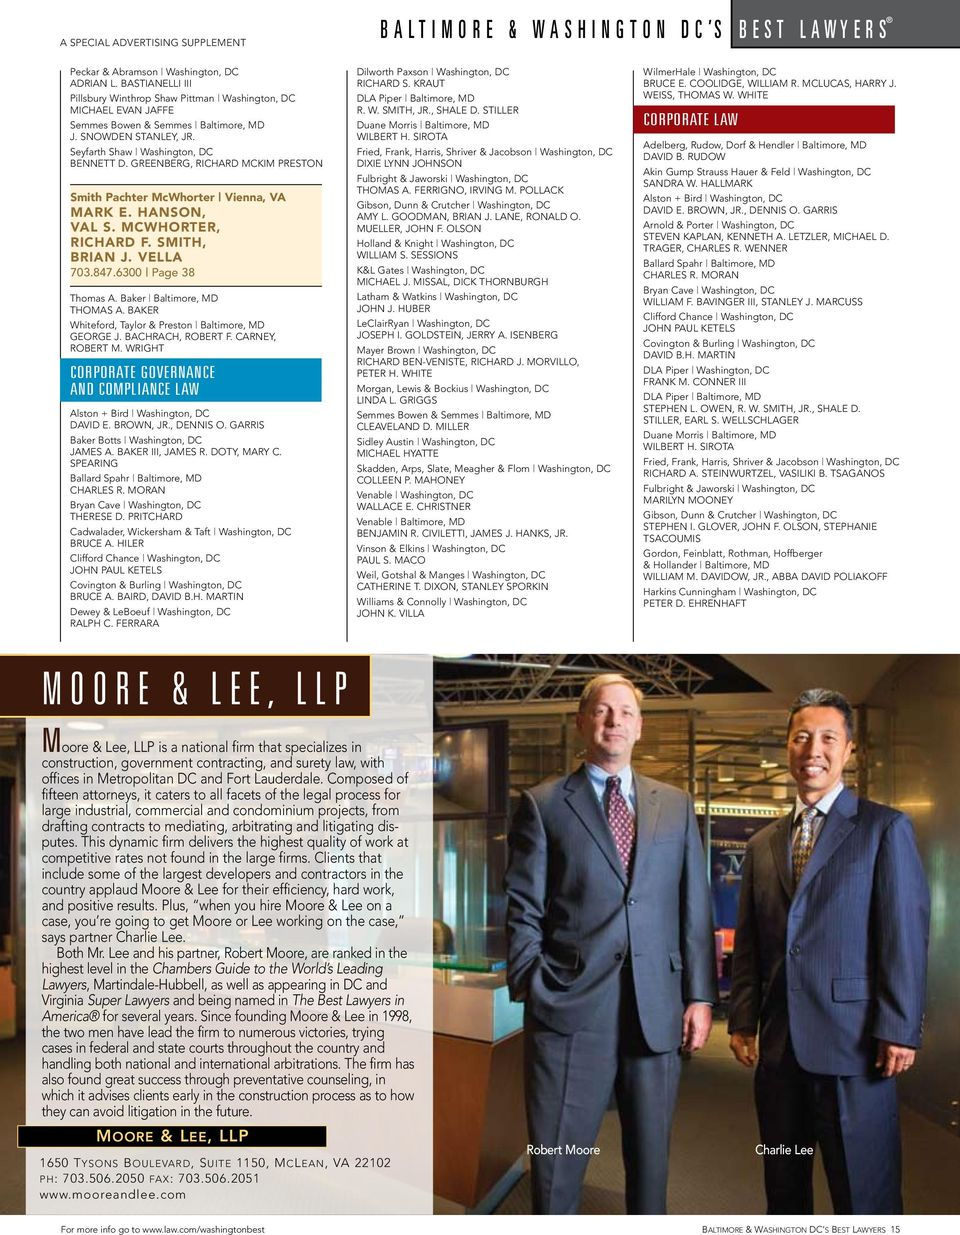 GREENBERG, RICHARD MCKIM PRESTON Smith Pachter McWhorter Vienna, VA MARK E. HANSON, VAL S. MCWHORTER, RICHARD F. SMITH, BRIAN J. VELLA 703.847.6300 Page 38 Thomas A. Baker Baltimore, MD THOMAS A.